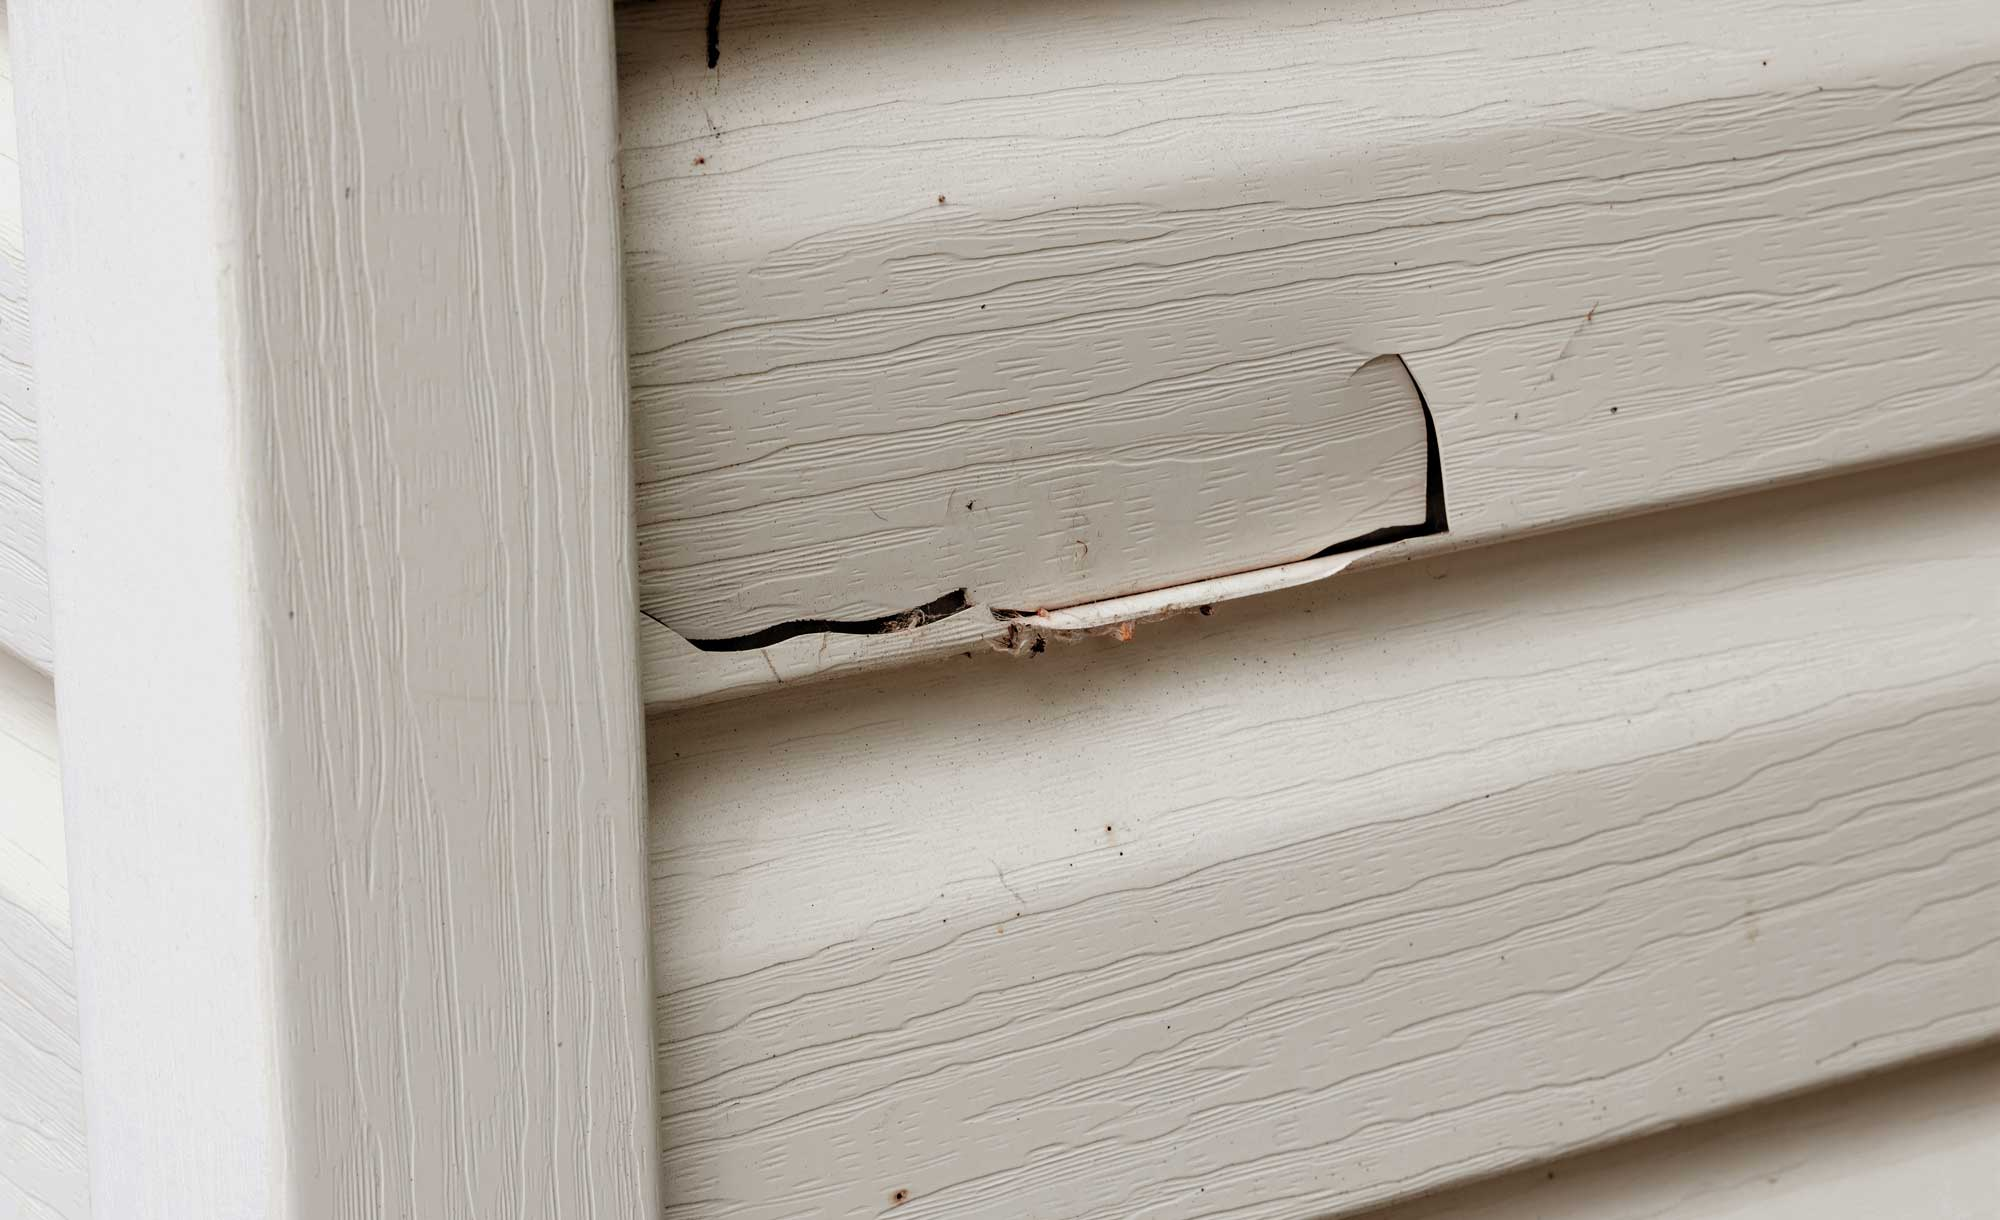 damaged vinyl siding that is in need of repair